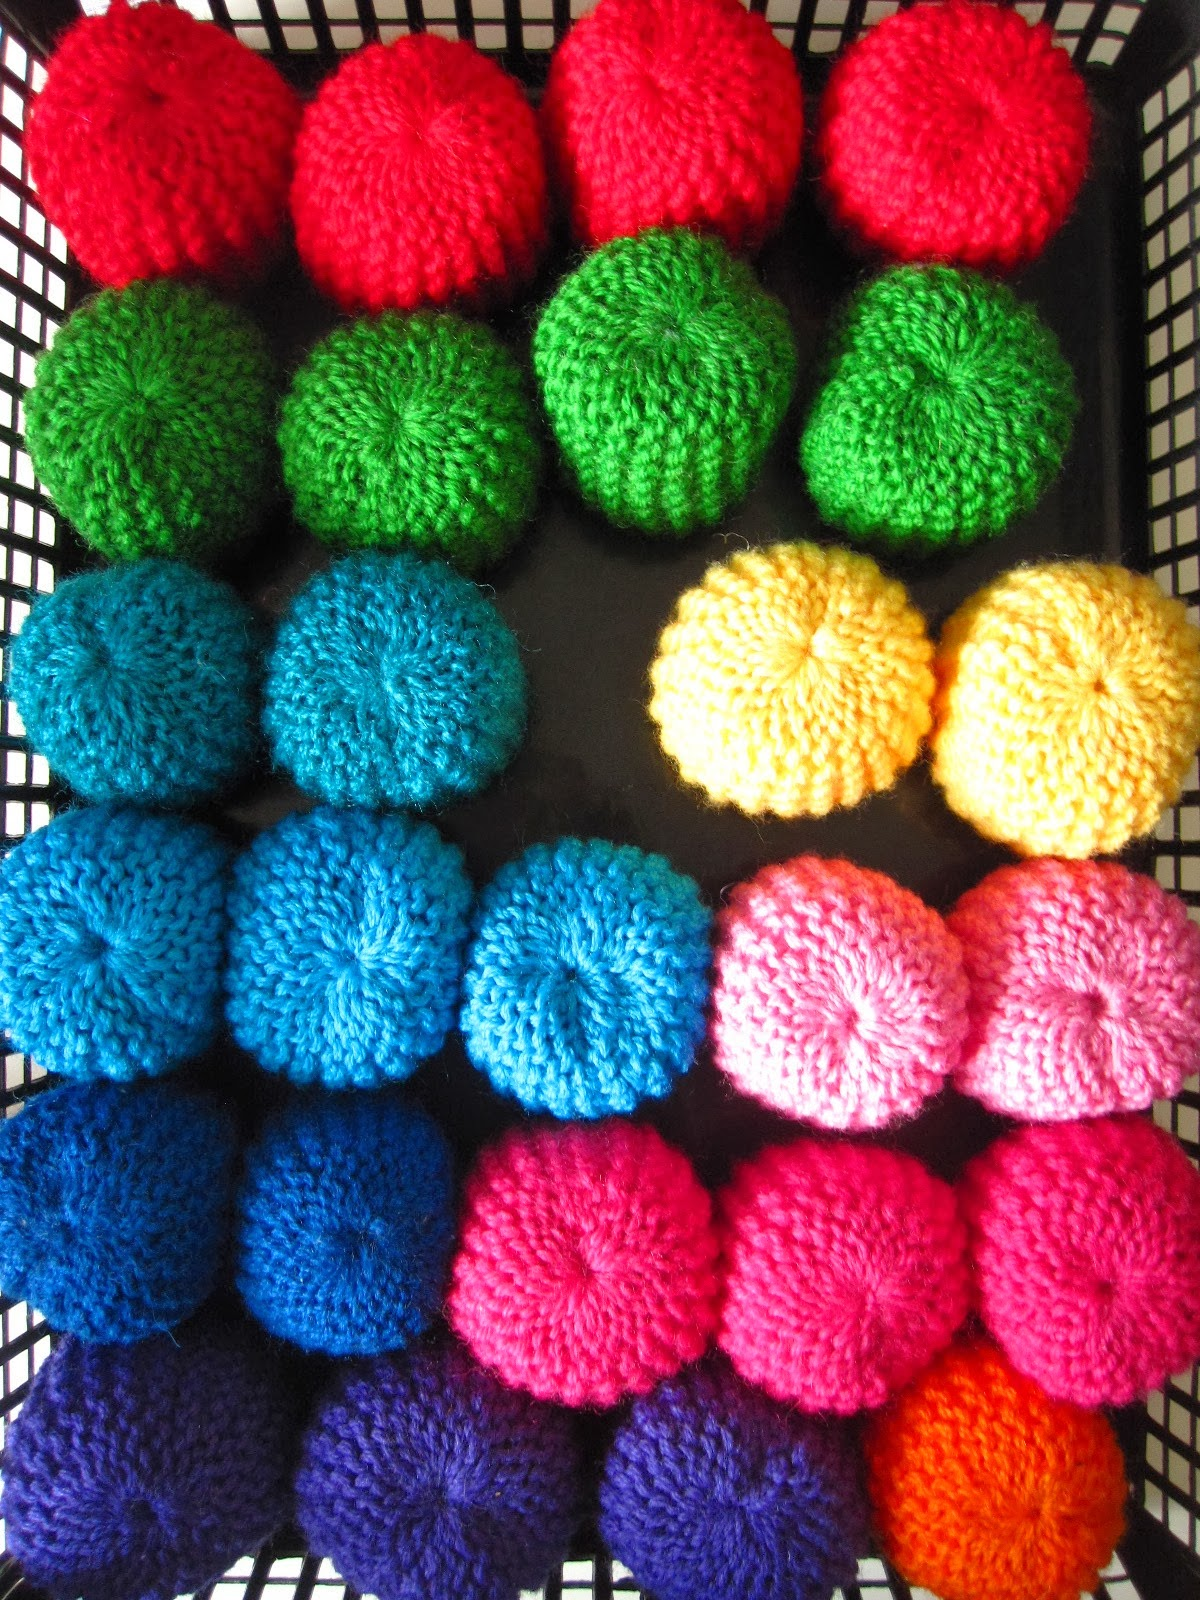 Rows of colourful modern miniature knitted pouffes in a square black plastic basket